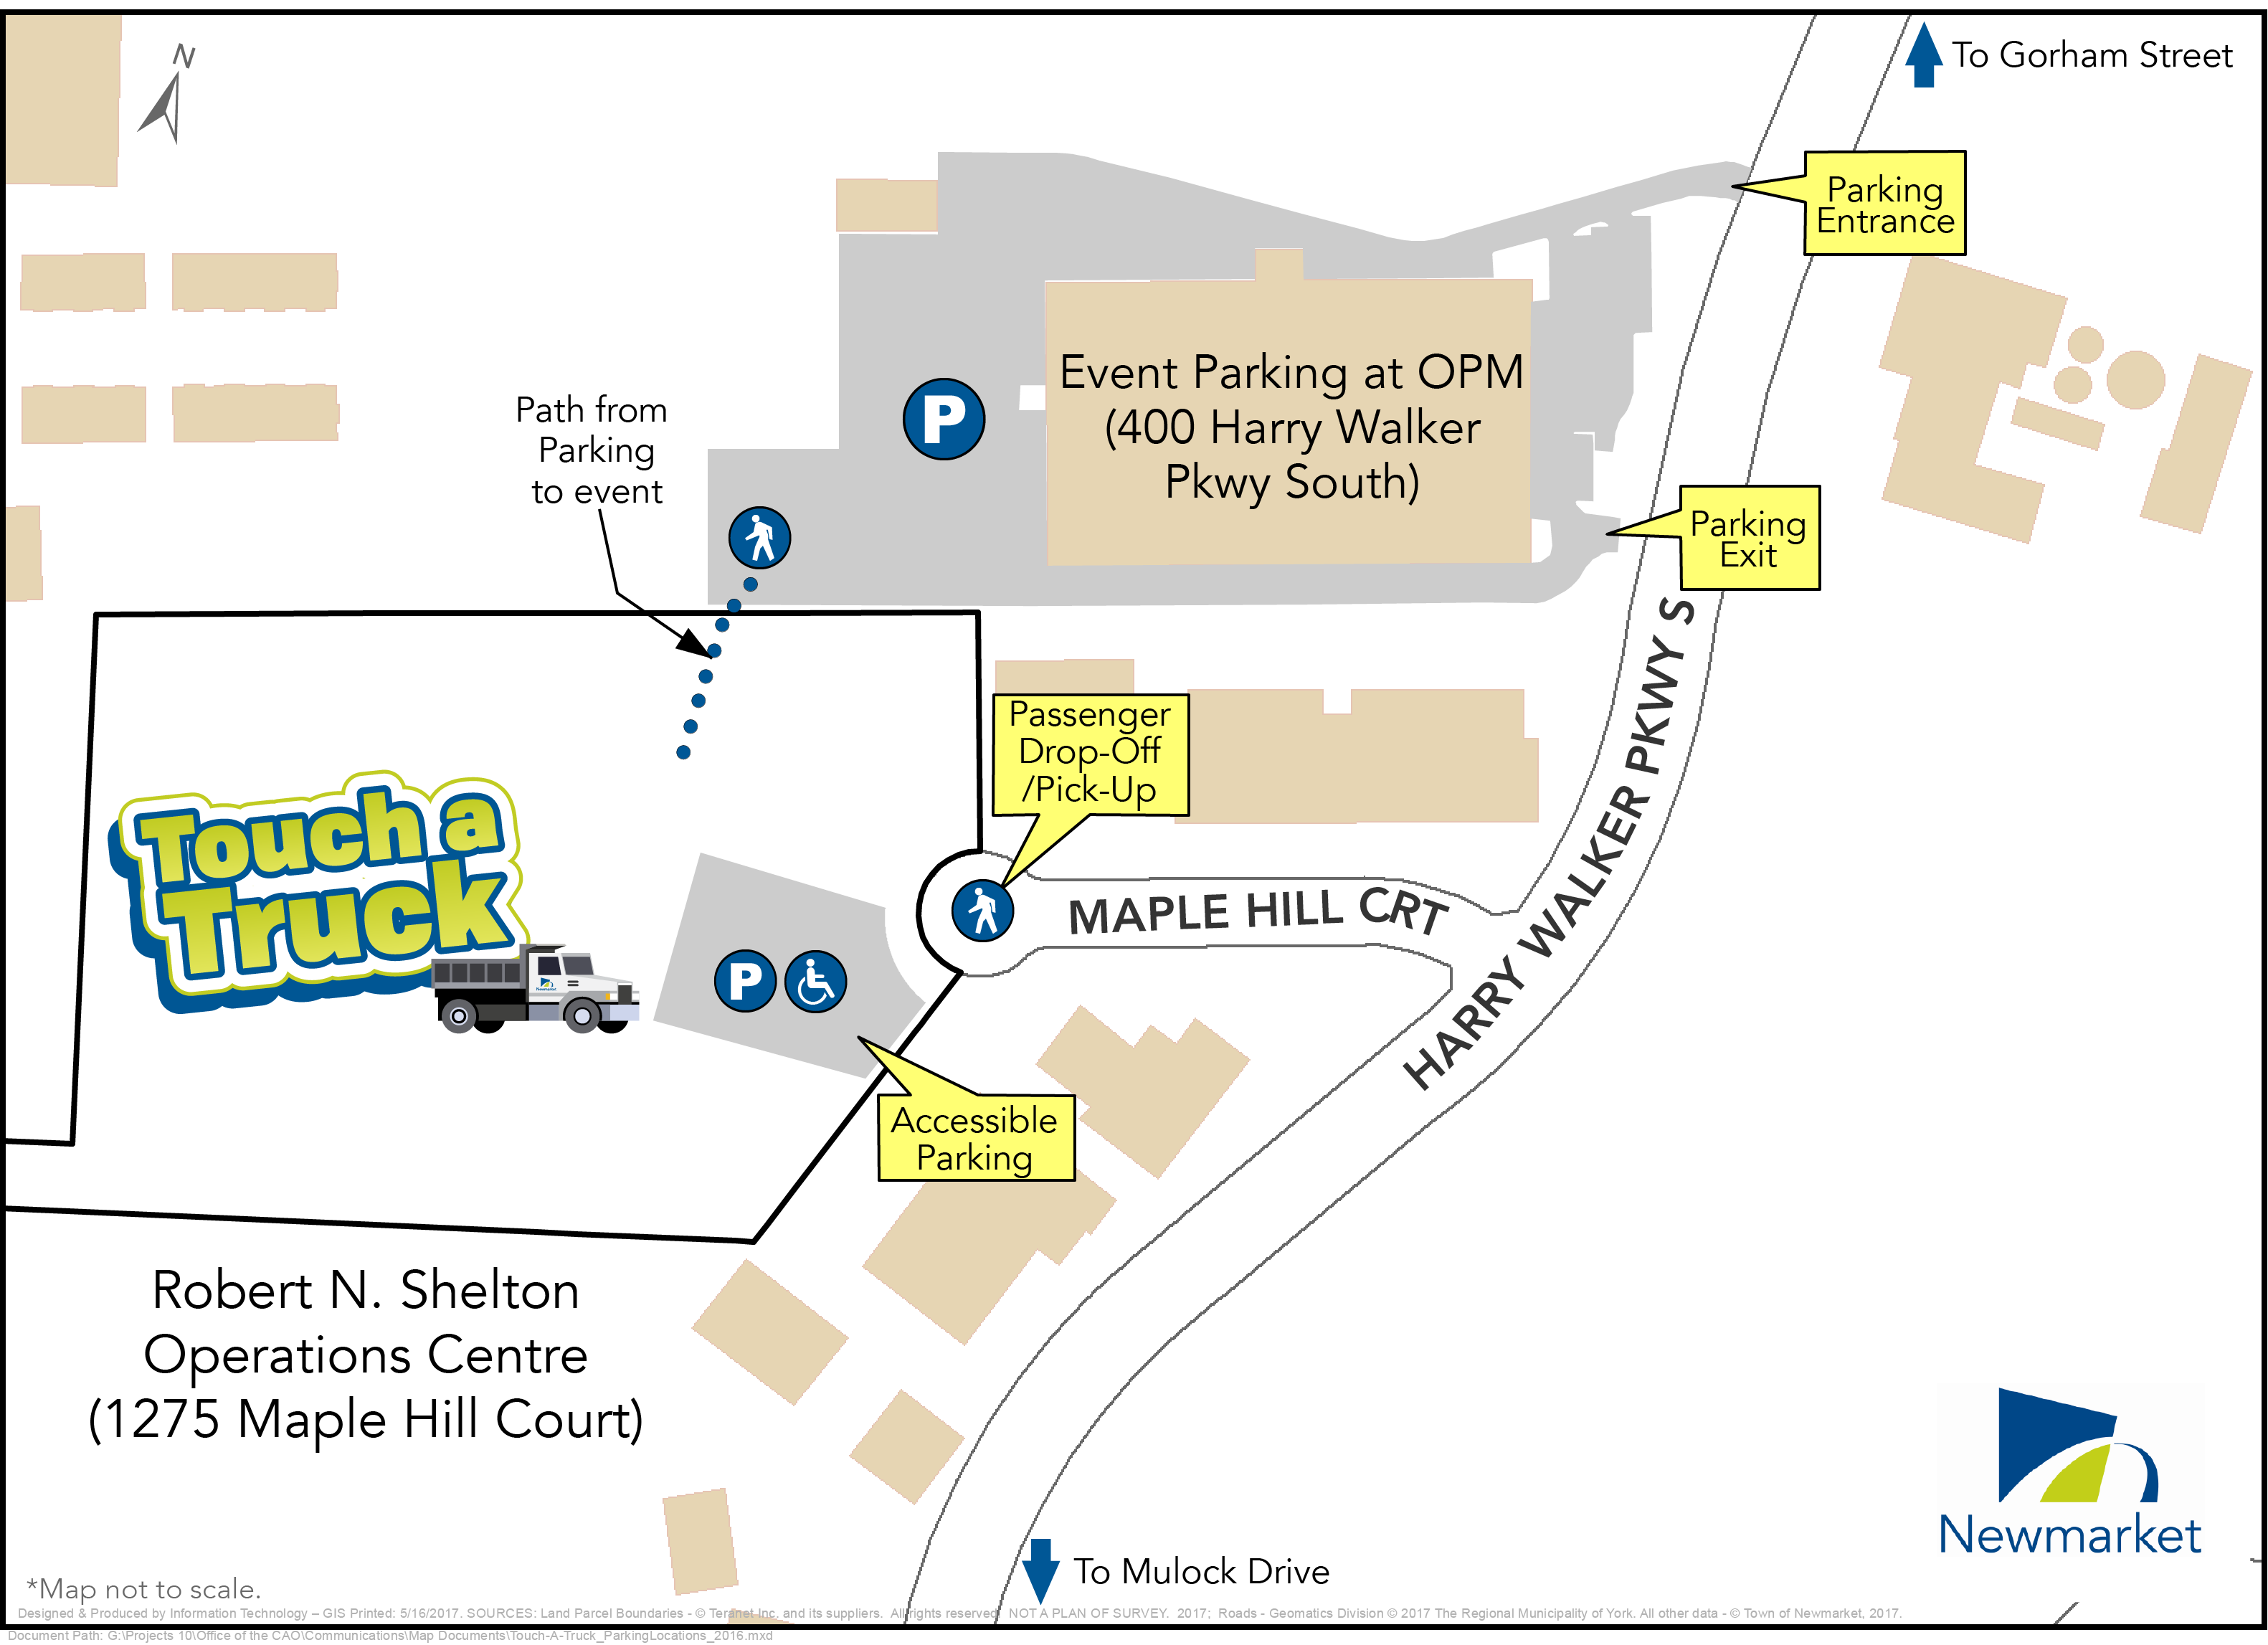 image of Touch a Truck Parking Map